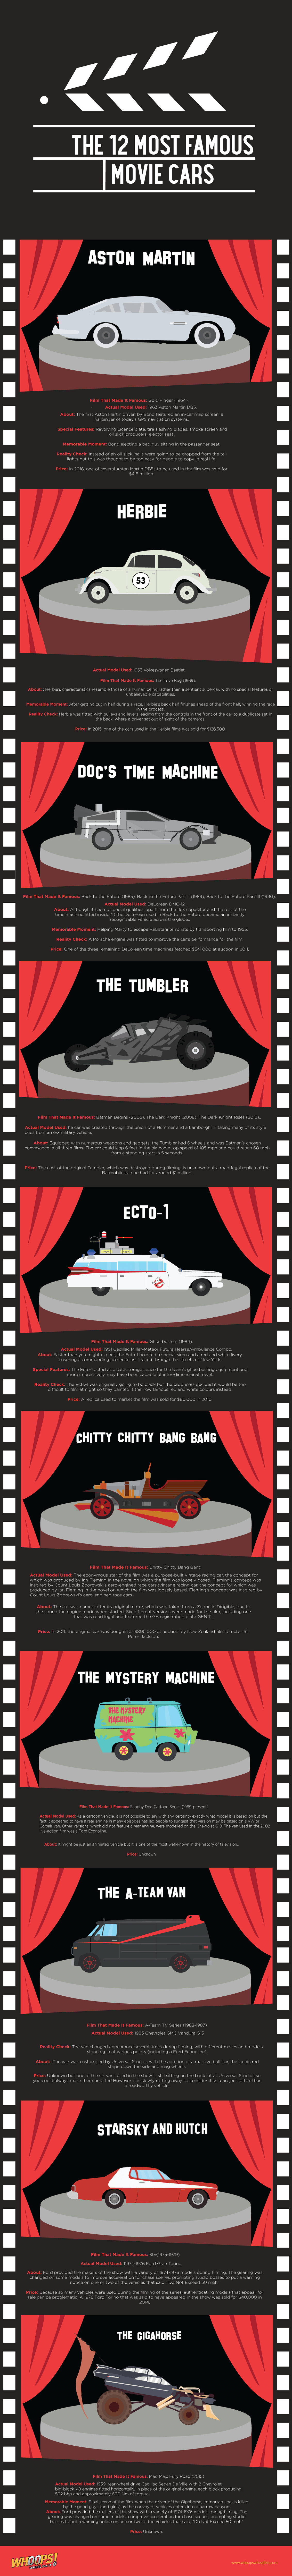 12-famous-movie-cars-infographic (2).png